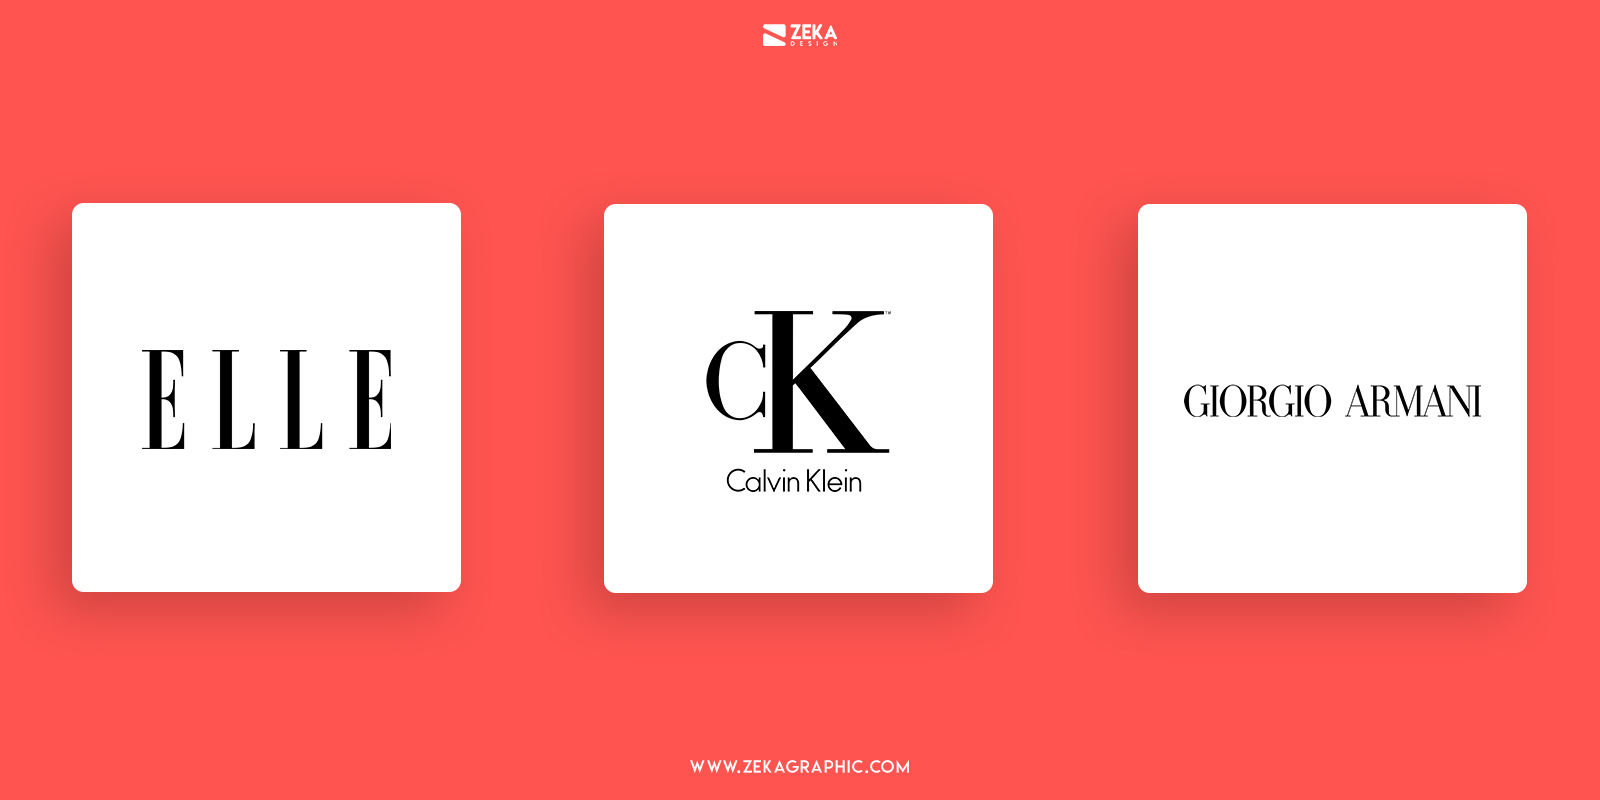 Bodoni Logos Fonts Every Graphic Designer Should Have